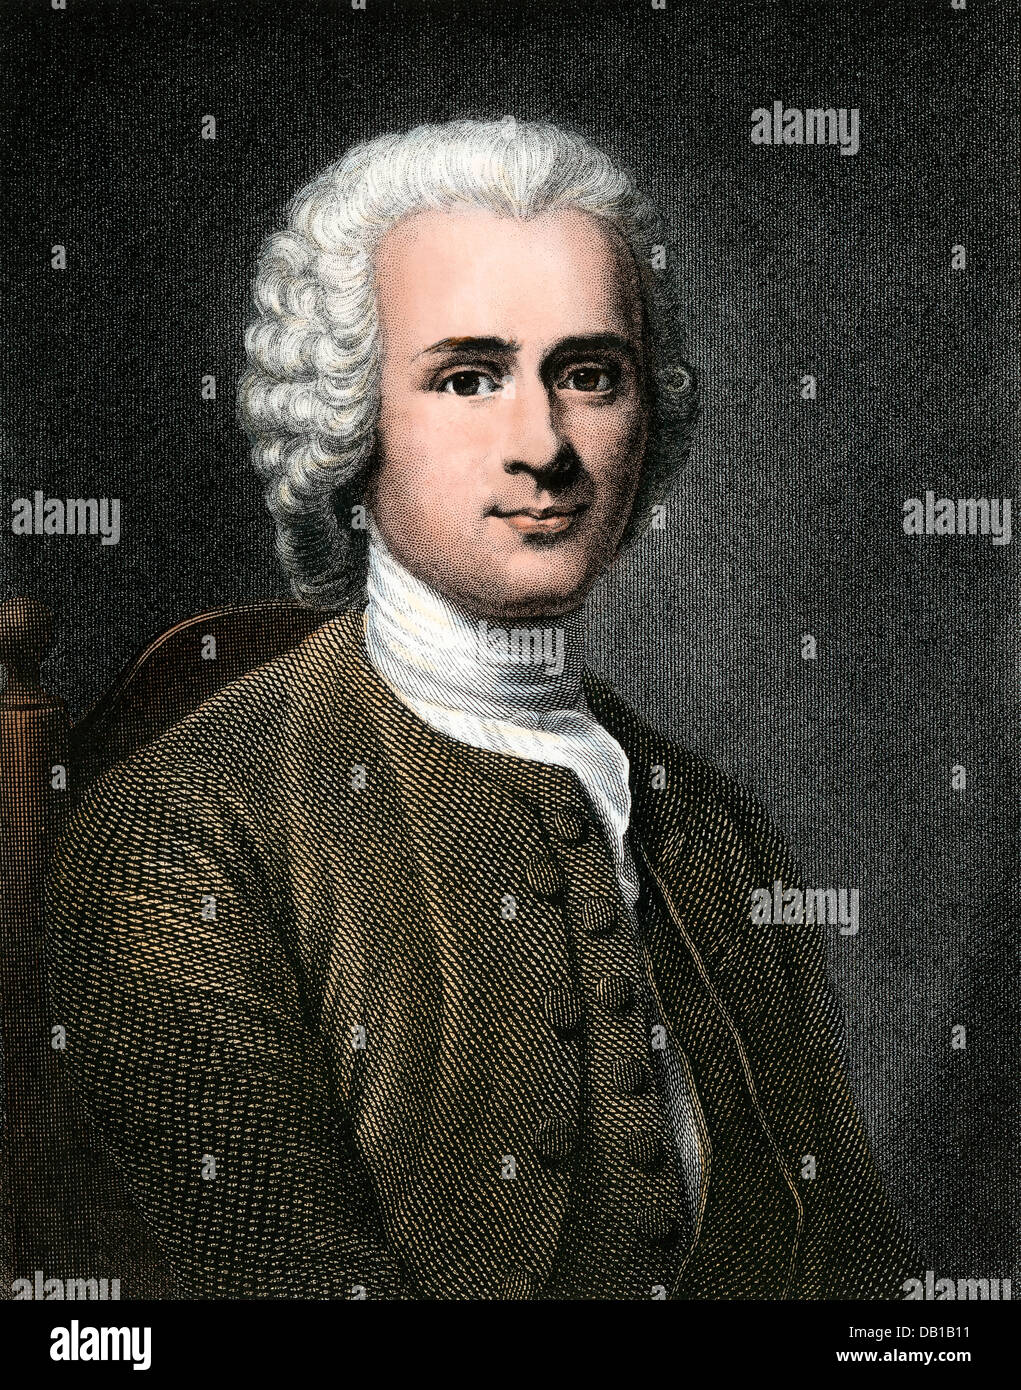 Jean-Jacques Rousseau. Hand-colored steel engraving - Stock Image